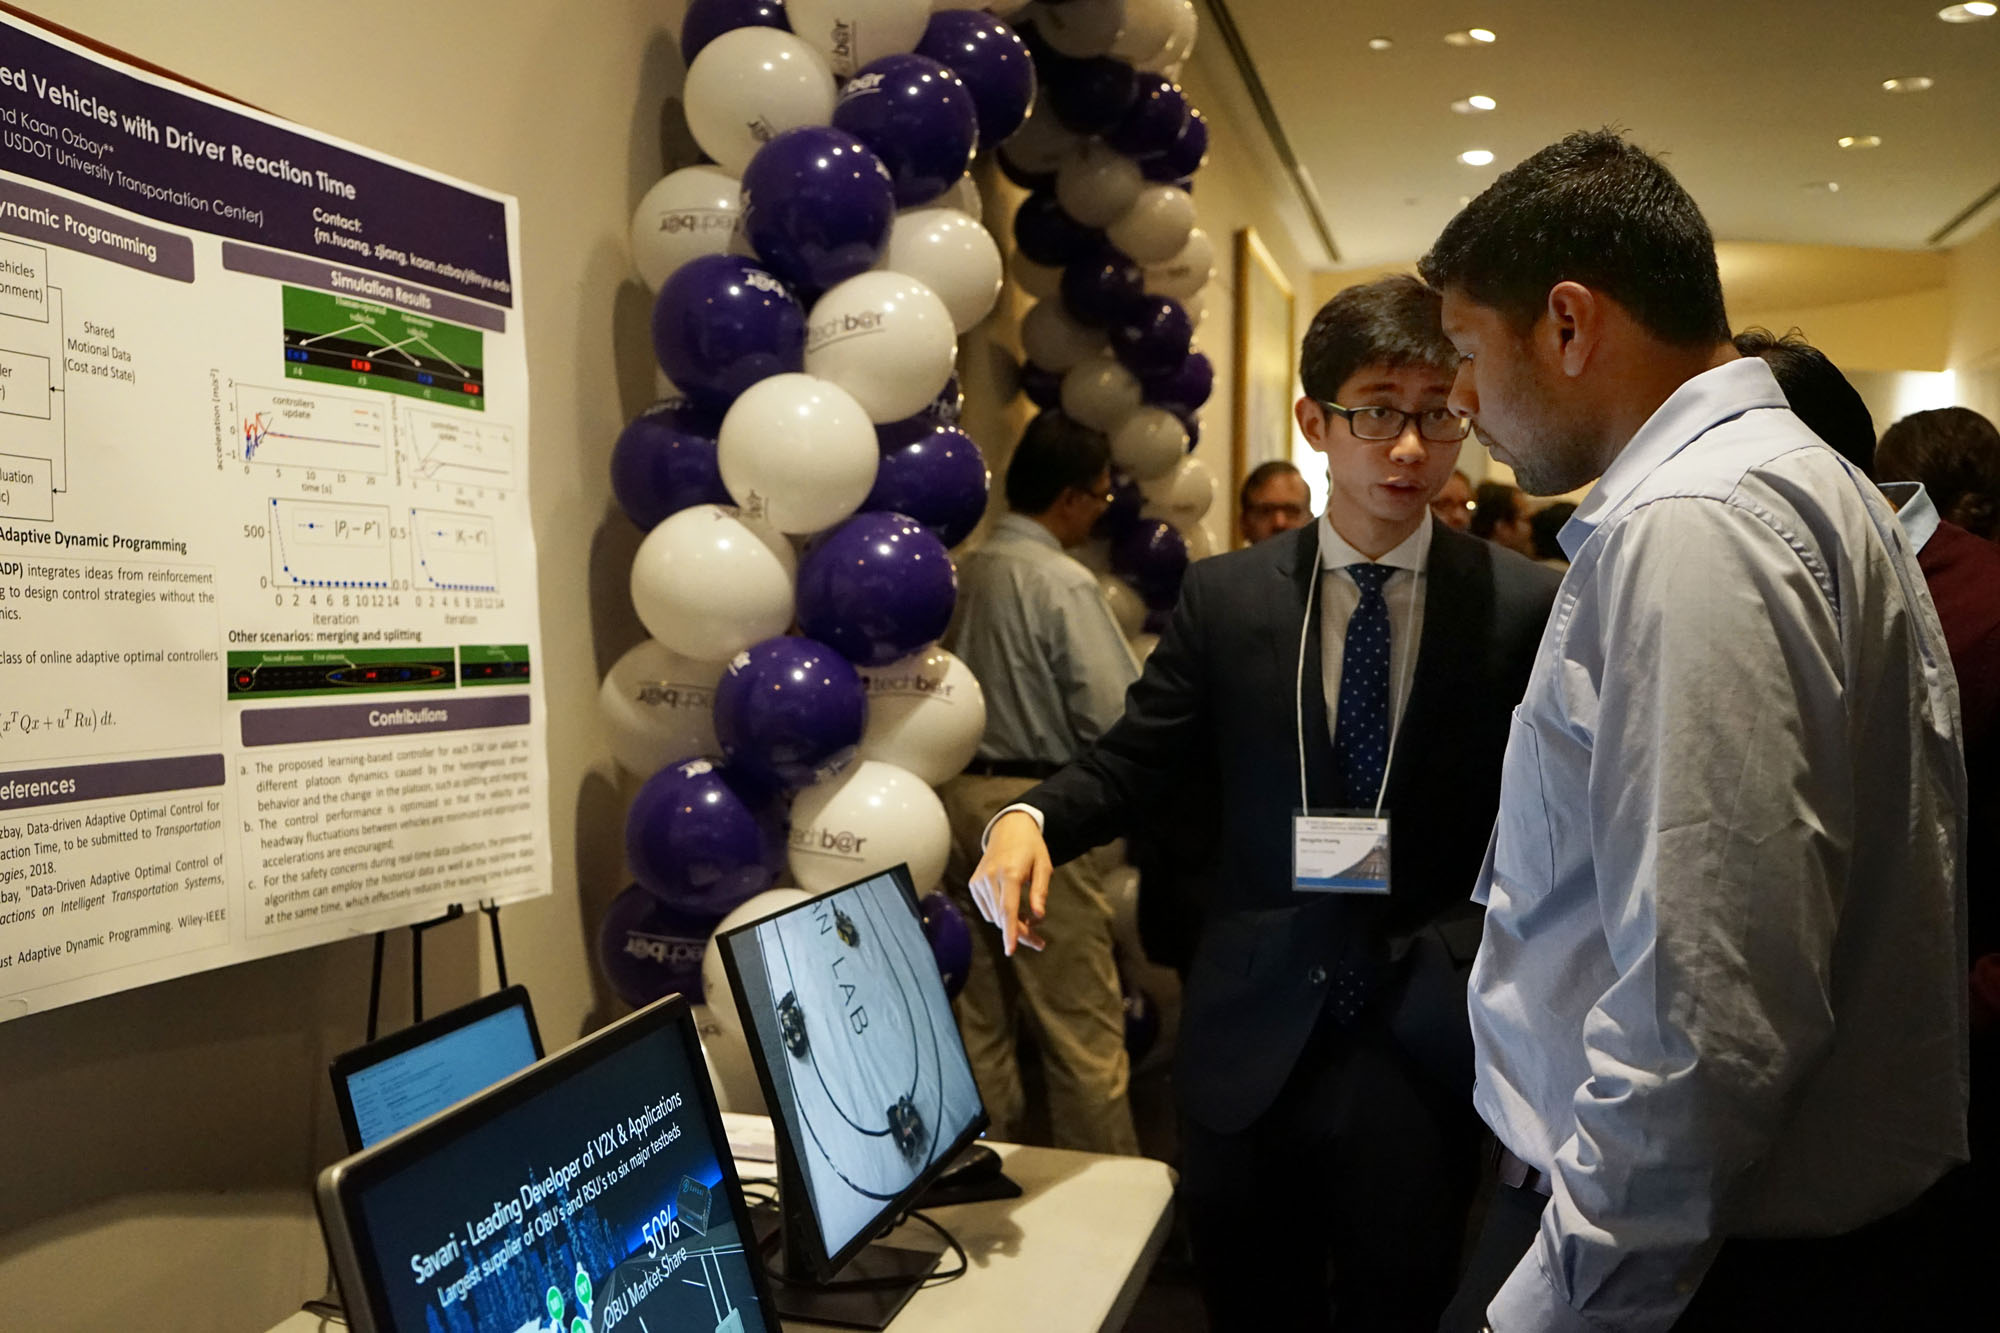 NYU Tandon PhD candidate Mengzhe Huang explains some of the recent research on display to a symposium attendee.